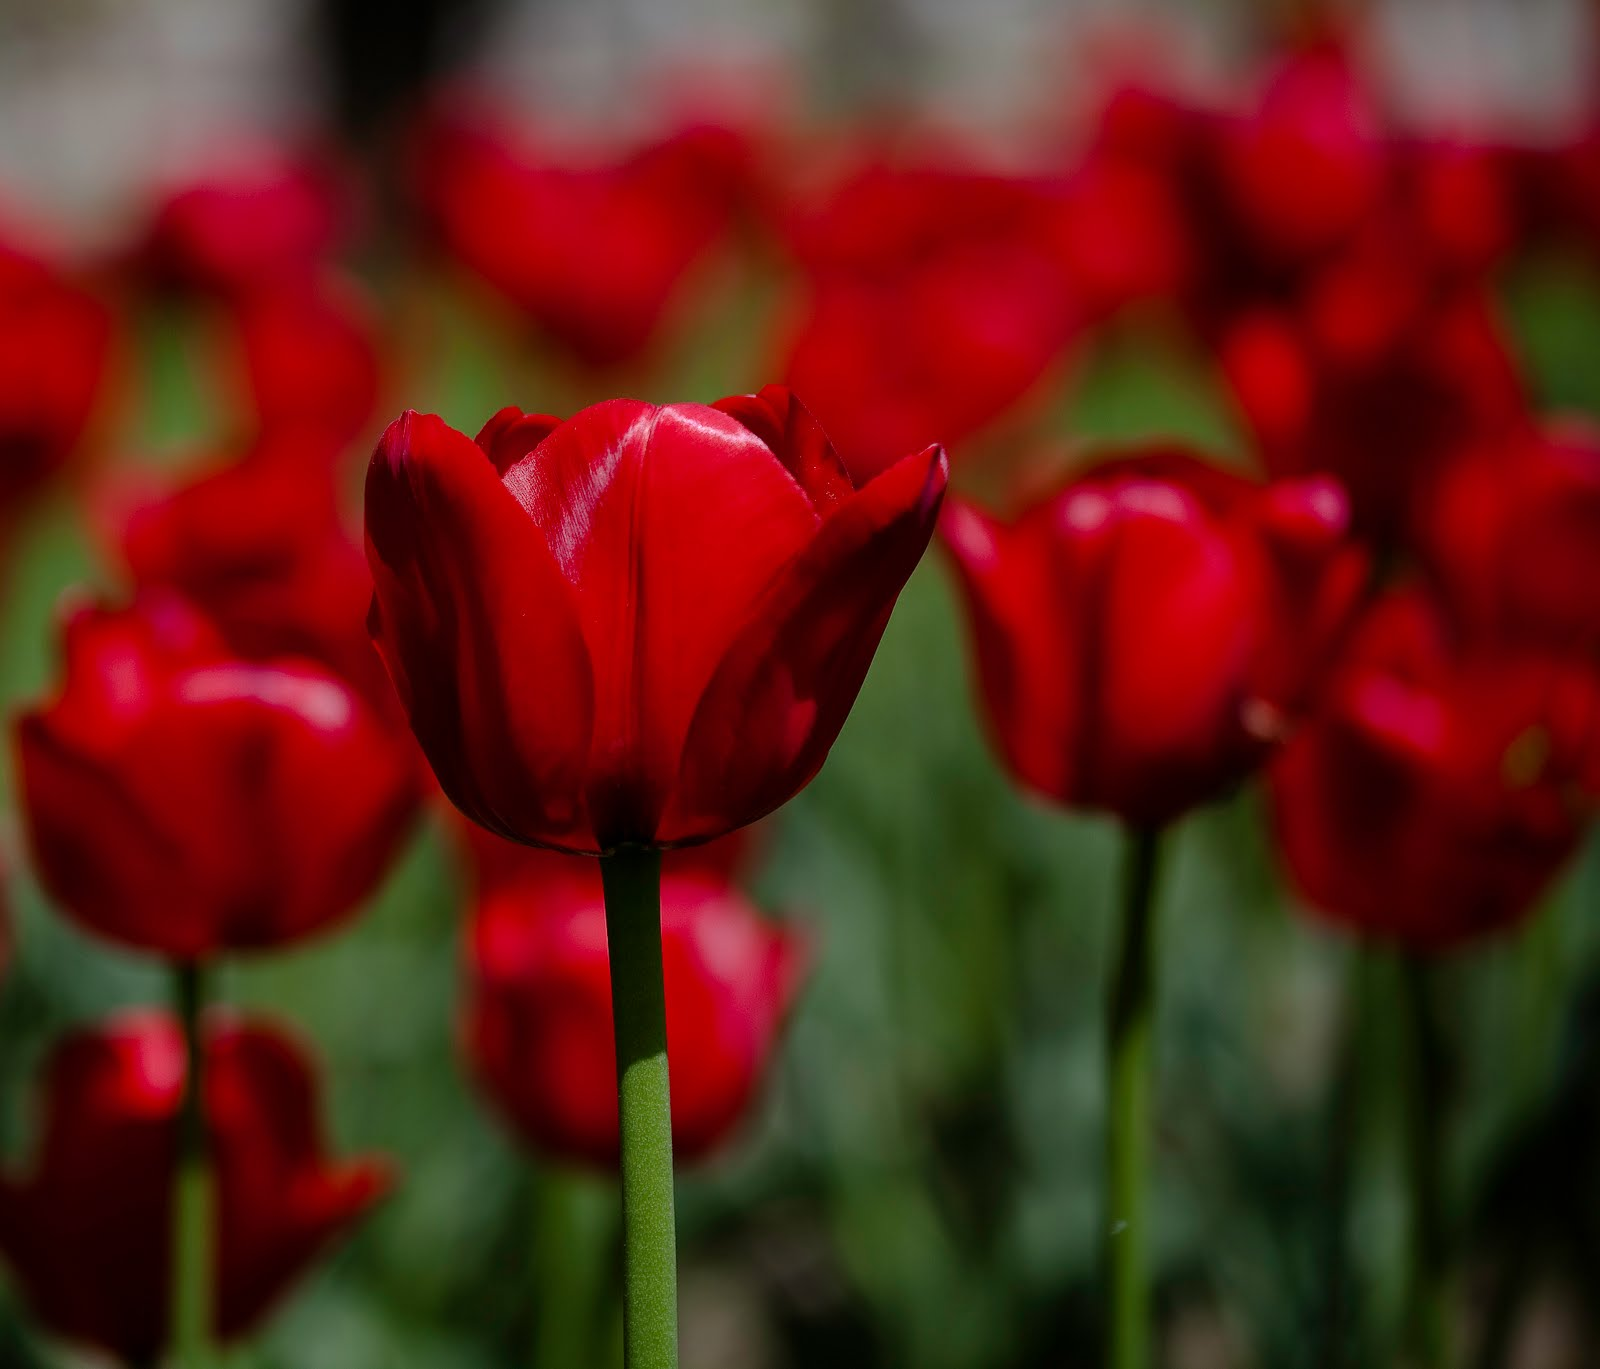 Red flowers wallpaper a12 hd desktop wallpapers 4k hd - Red flower desktop wallpaper ...